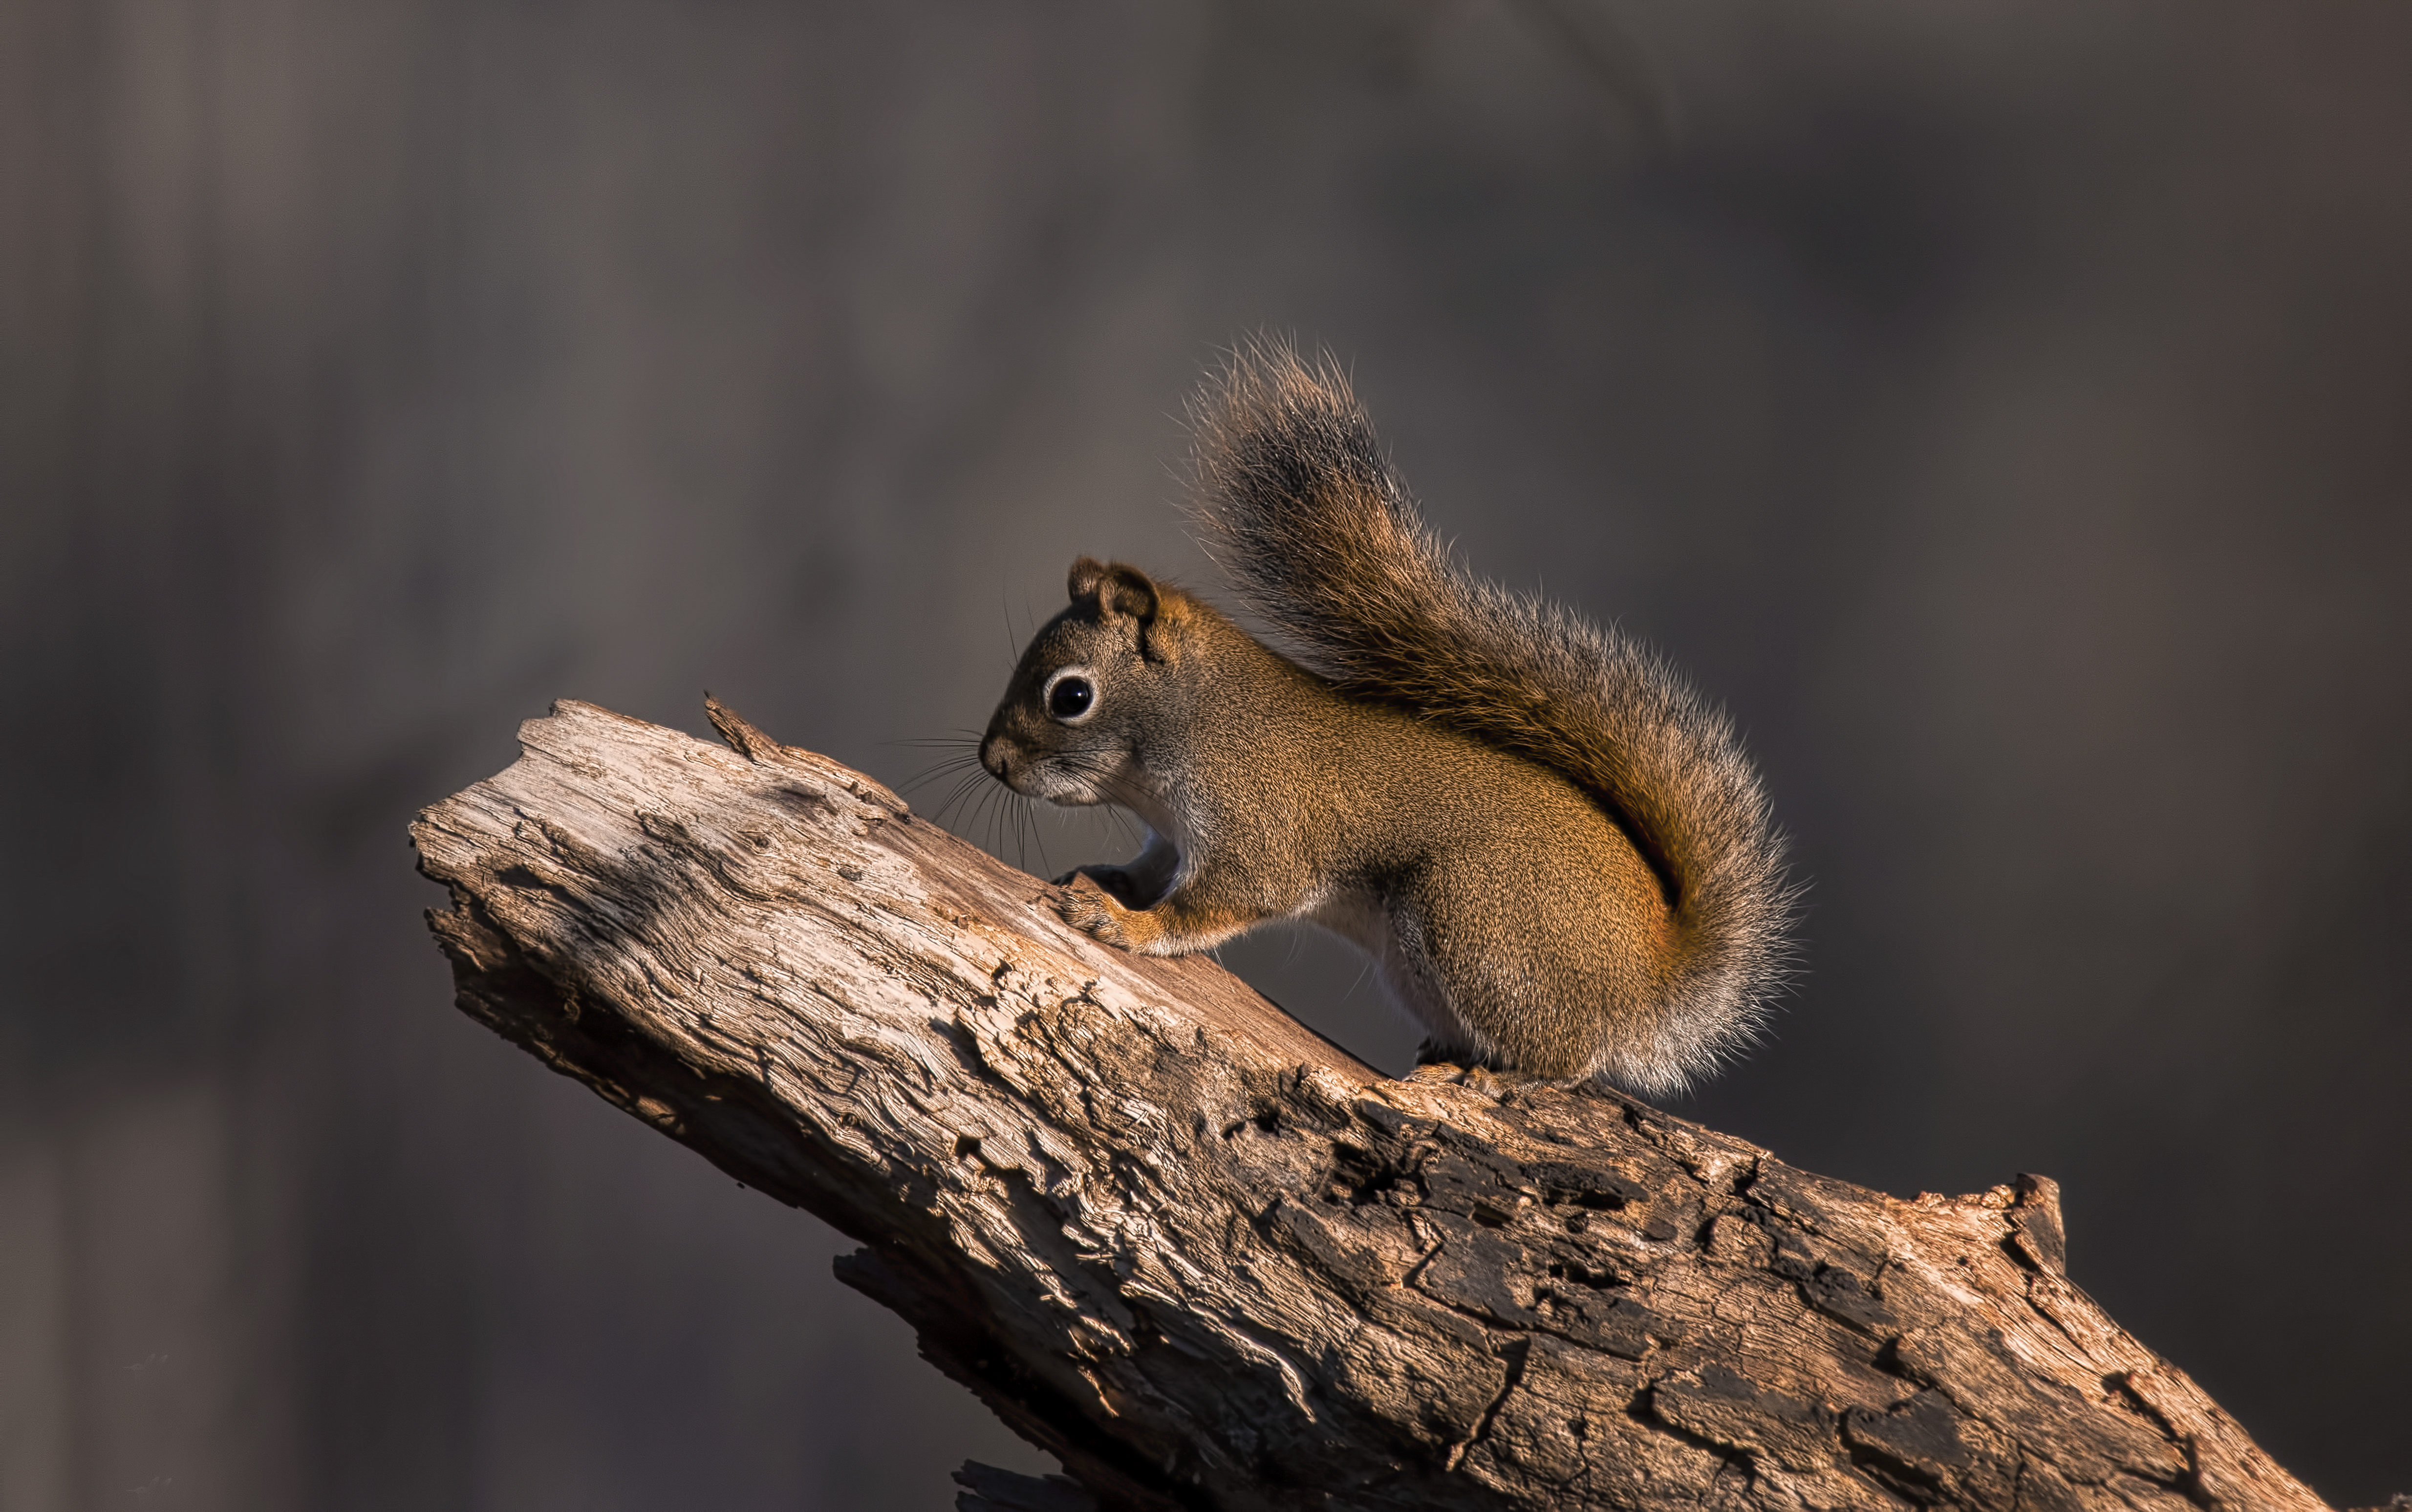 A Red Squirrel on a Tree Trunk